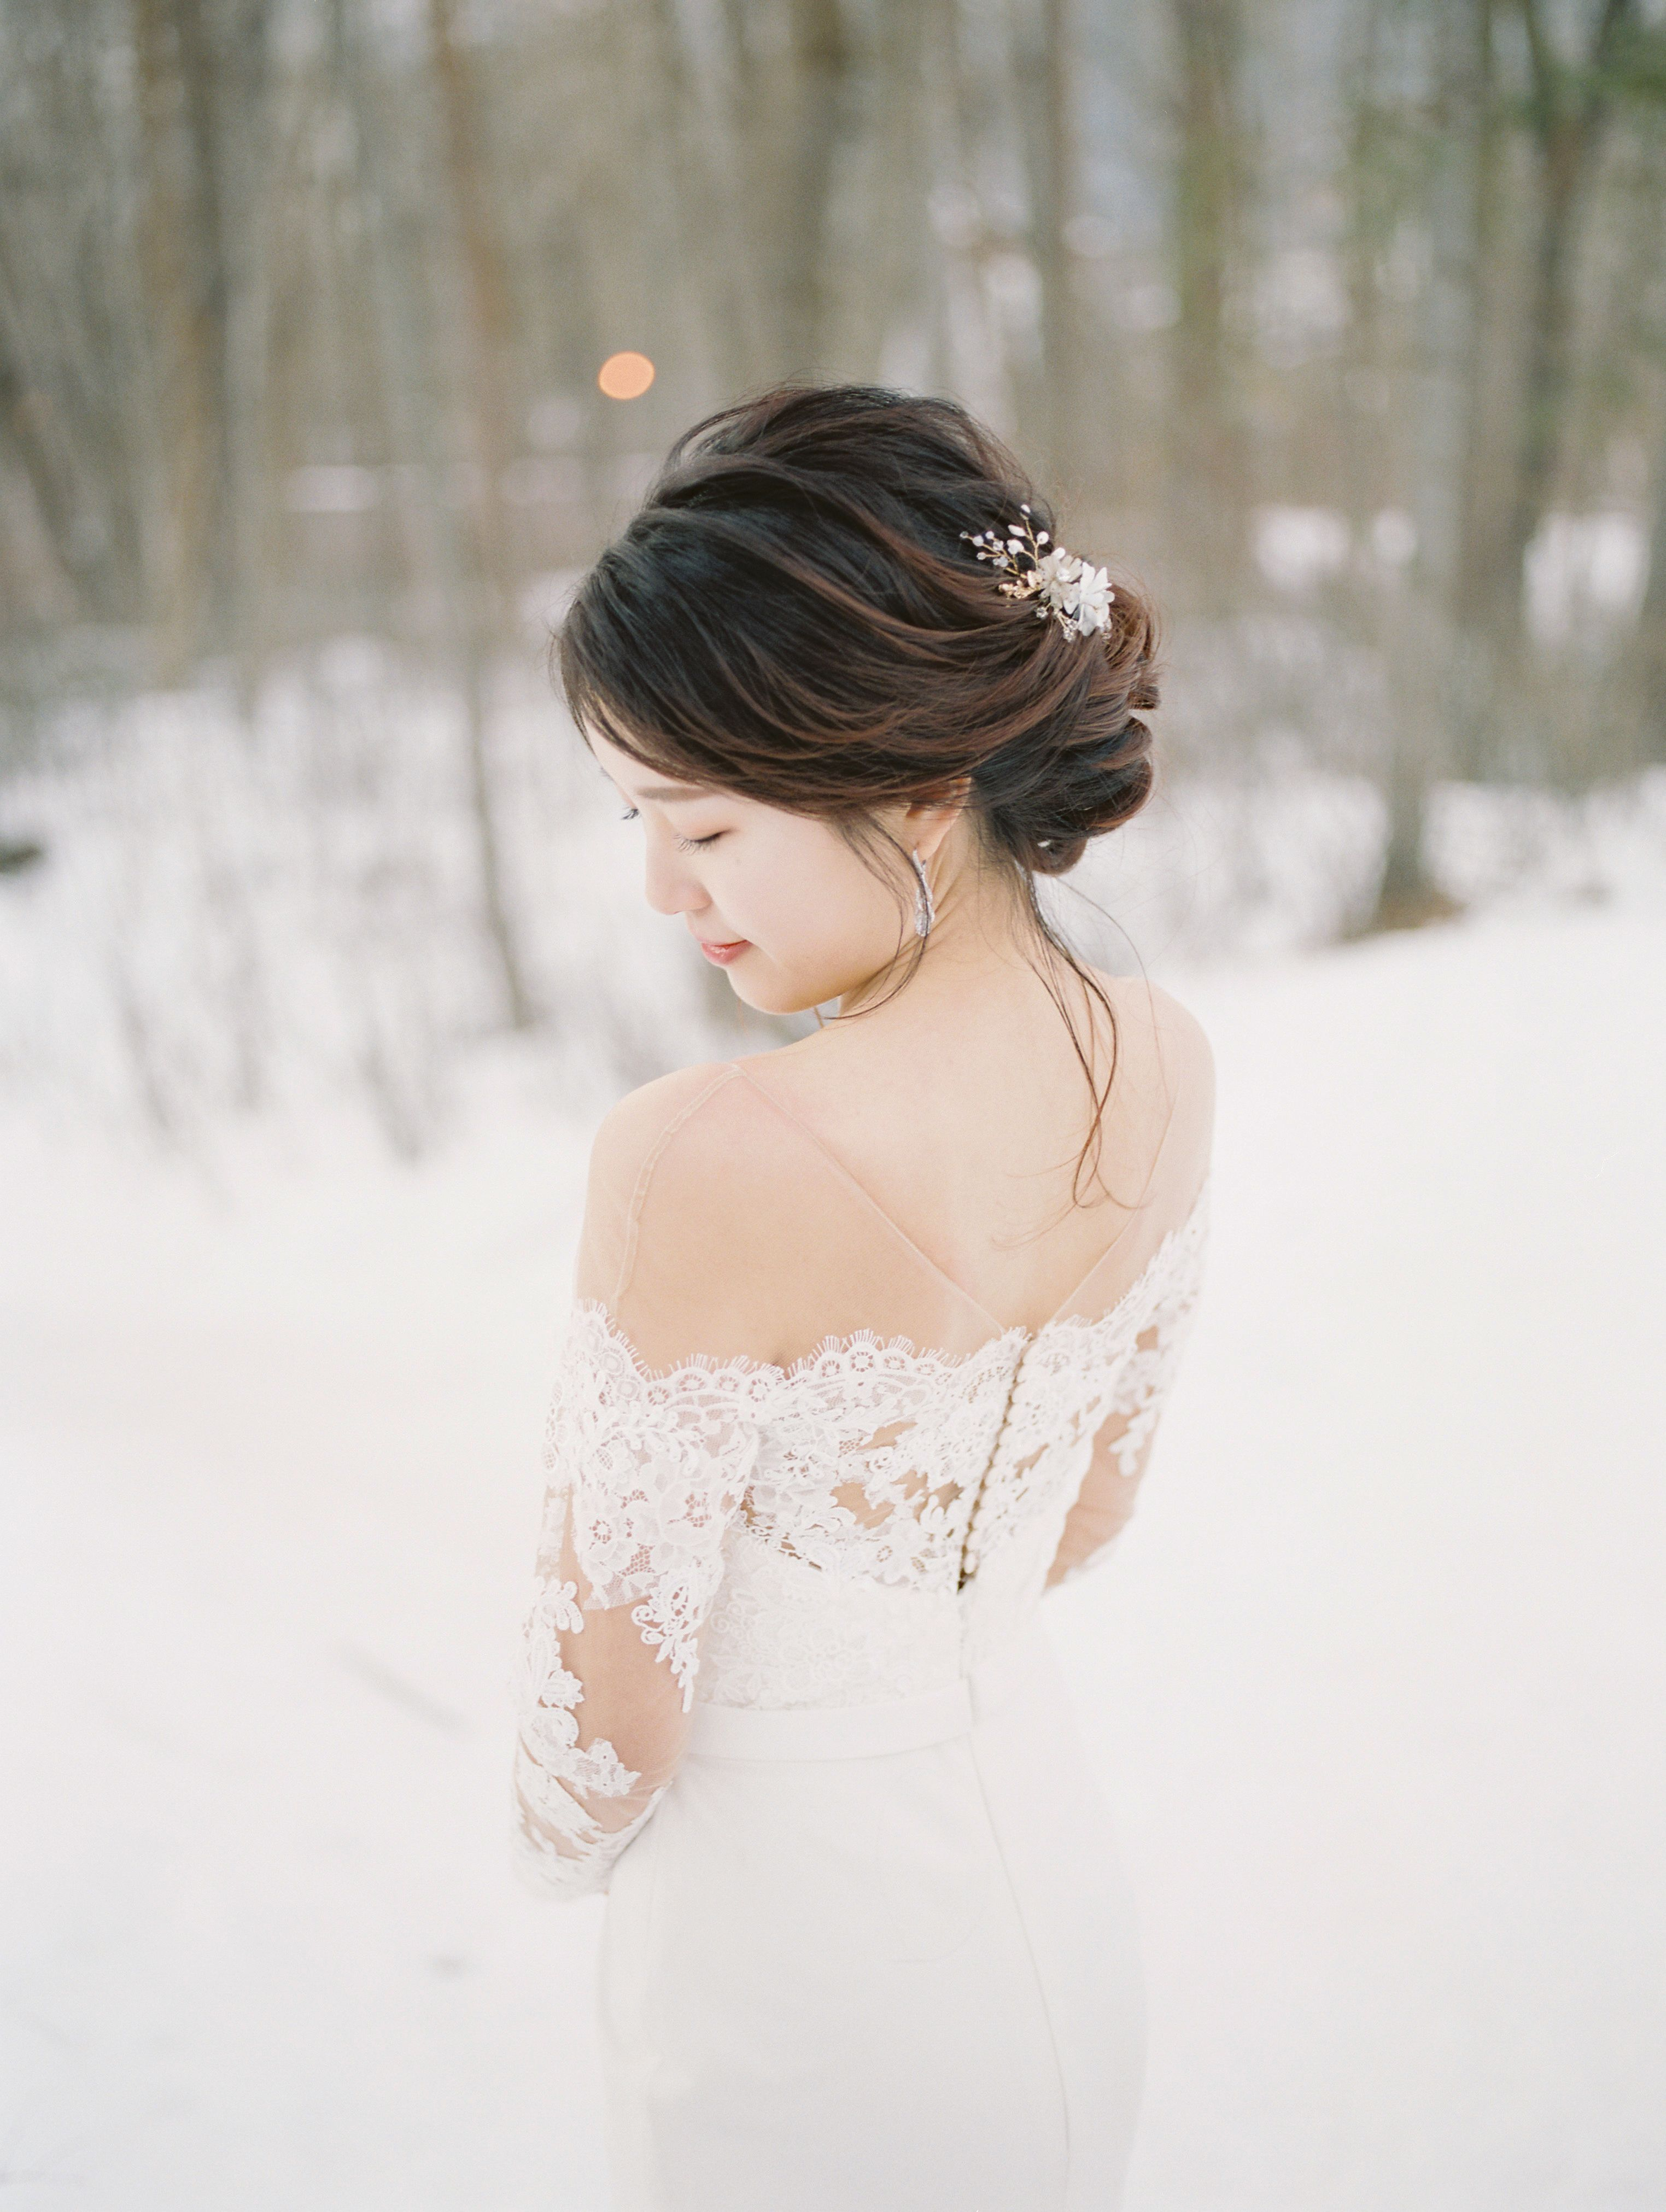 Asian Makeup And Updo Hairstyle Asian Bridal Makeup Flower Girl